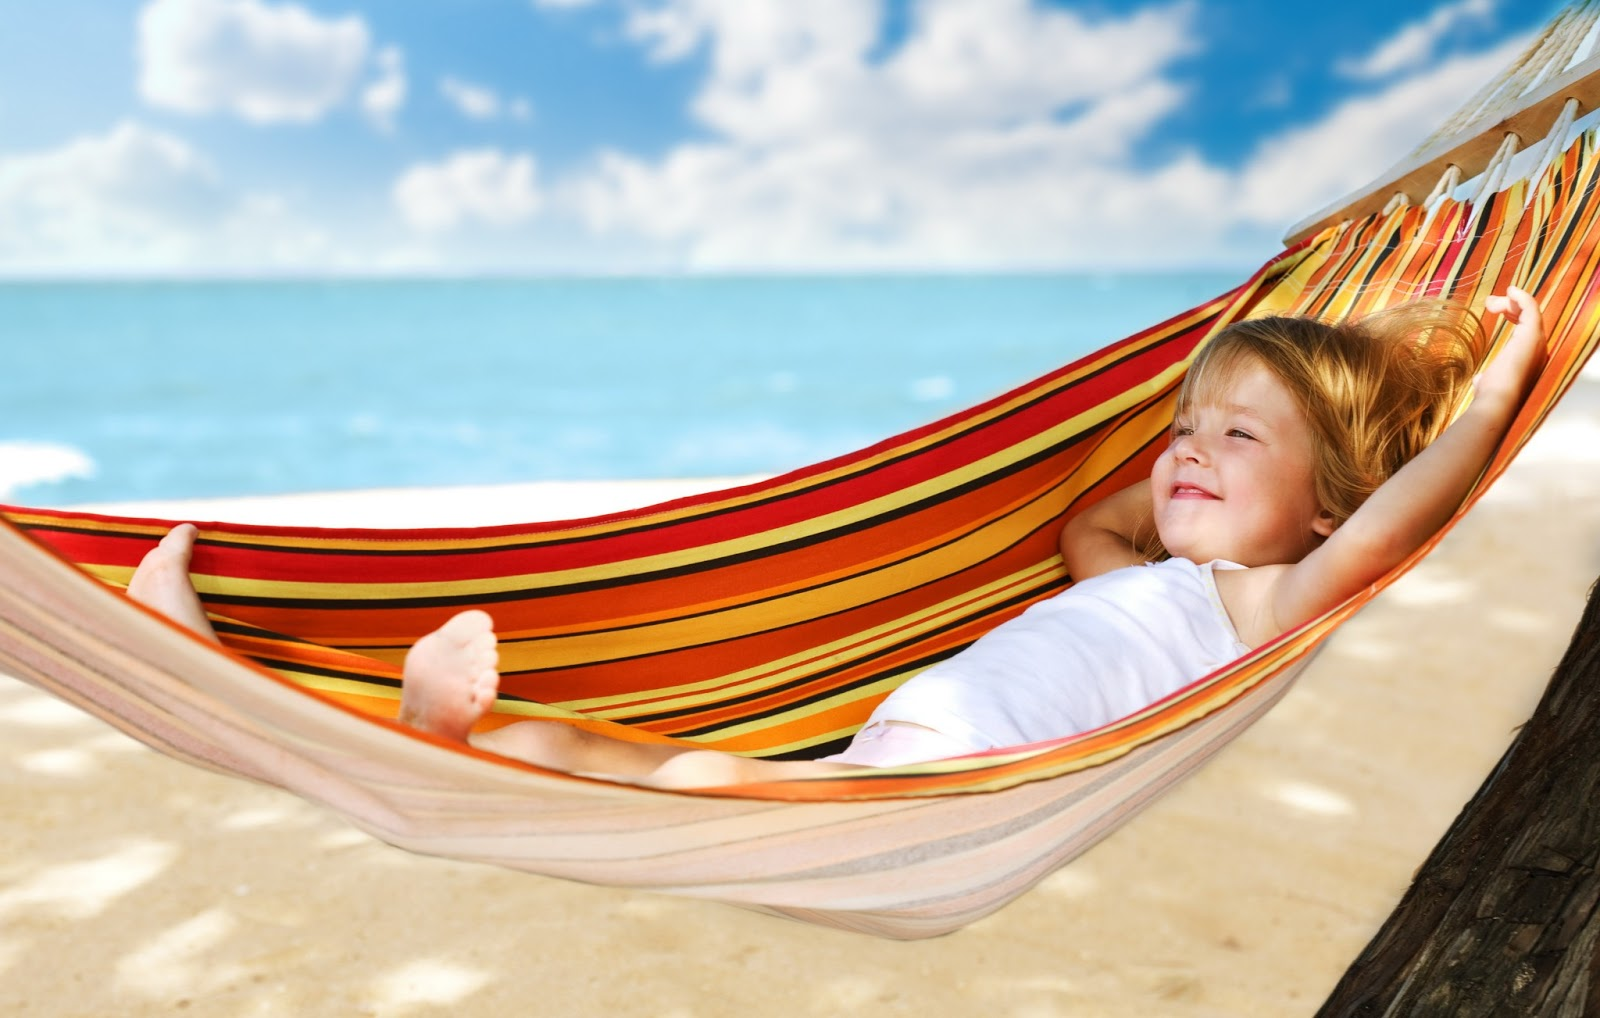 Kiss Day Wallpaper Hd Woman Relaxing In Hammock Wallpapers 500 Collection Hd